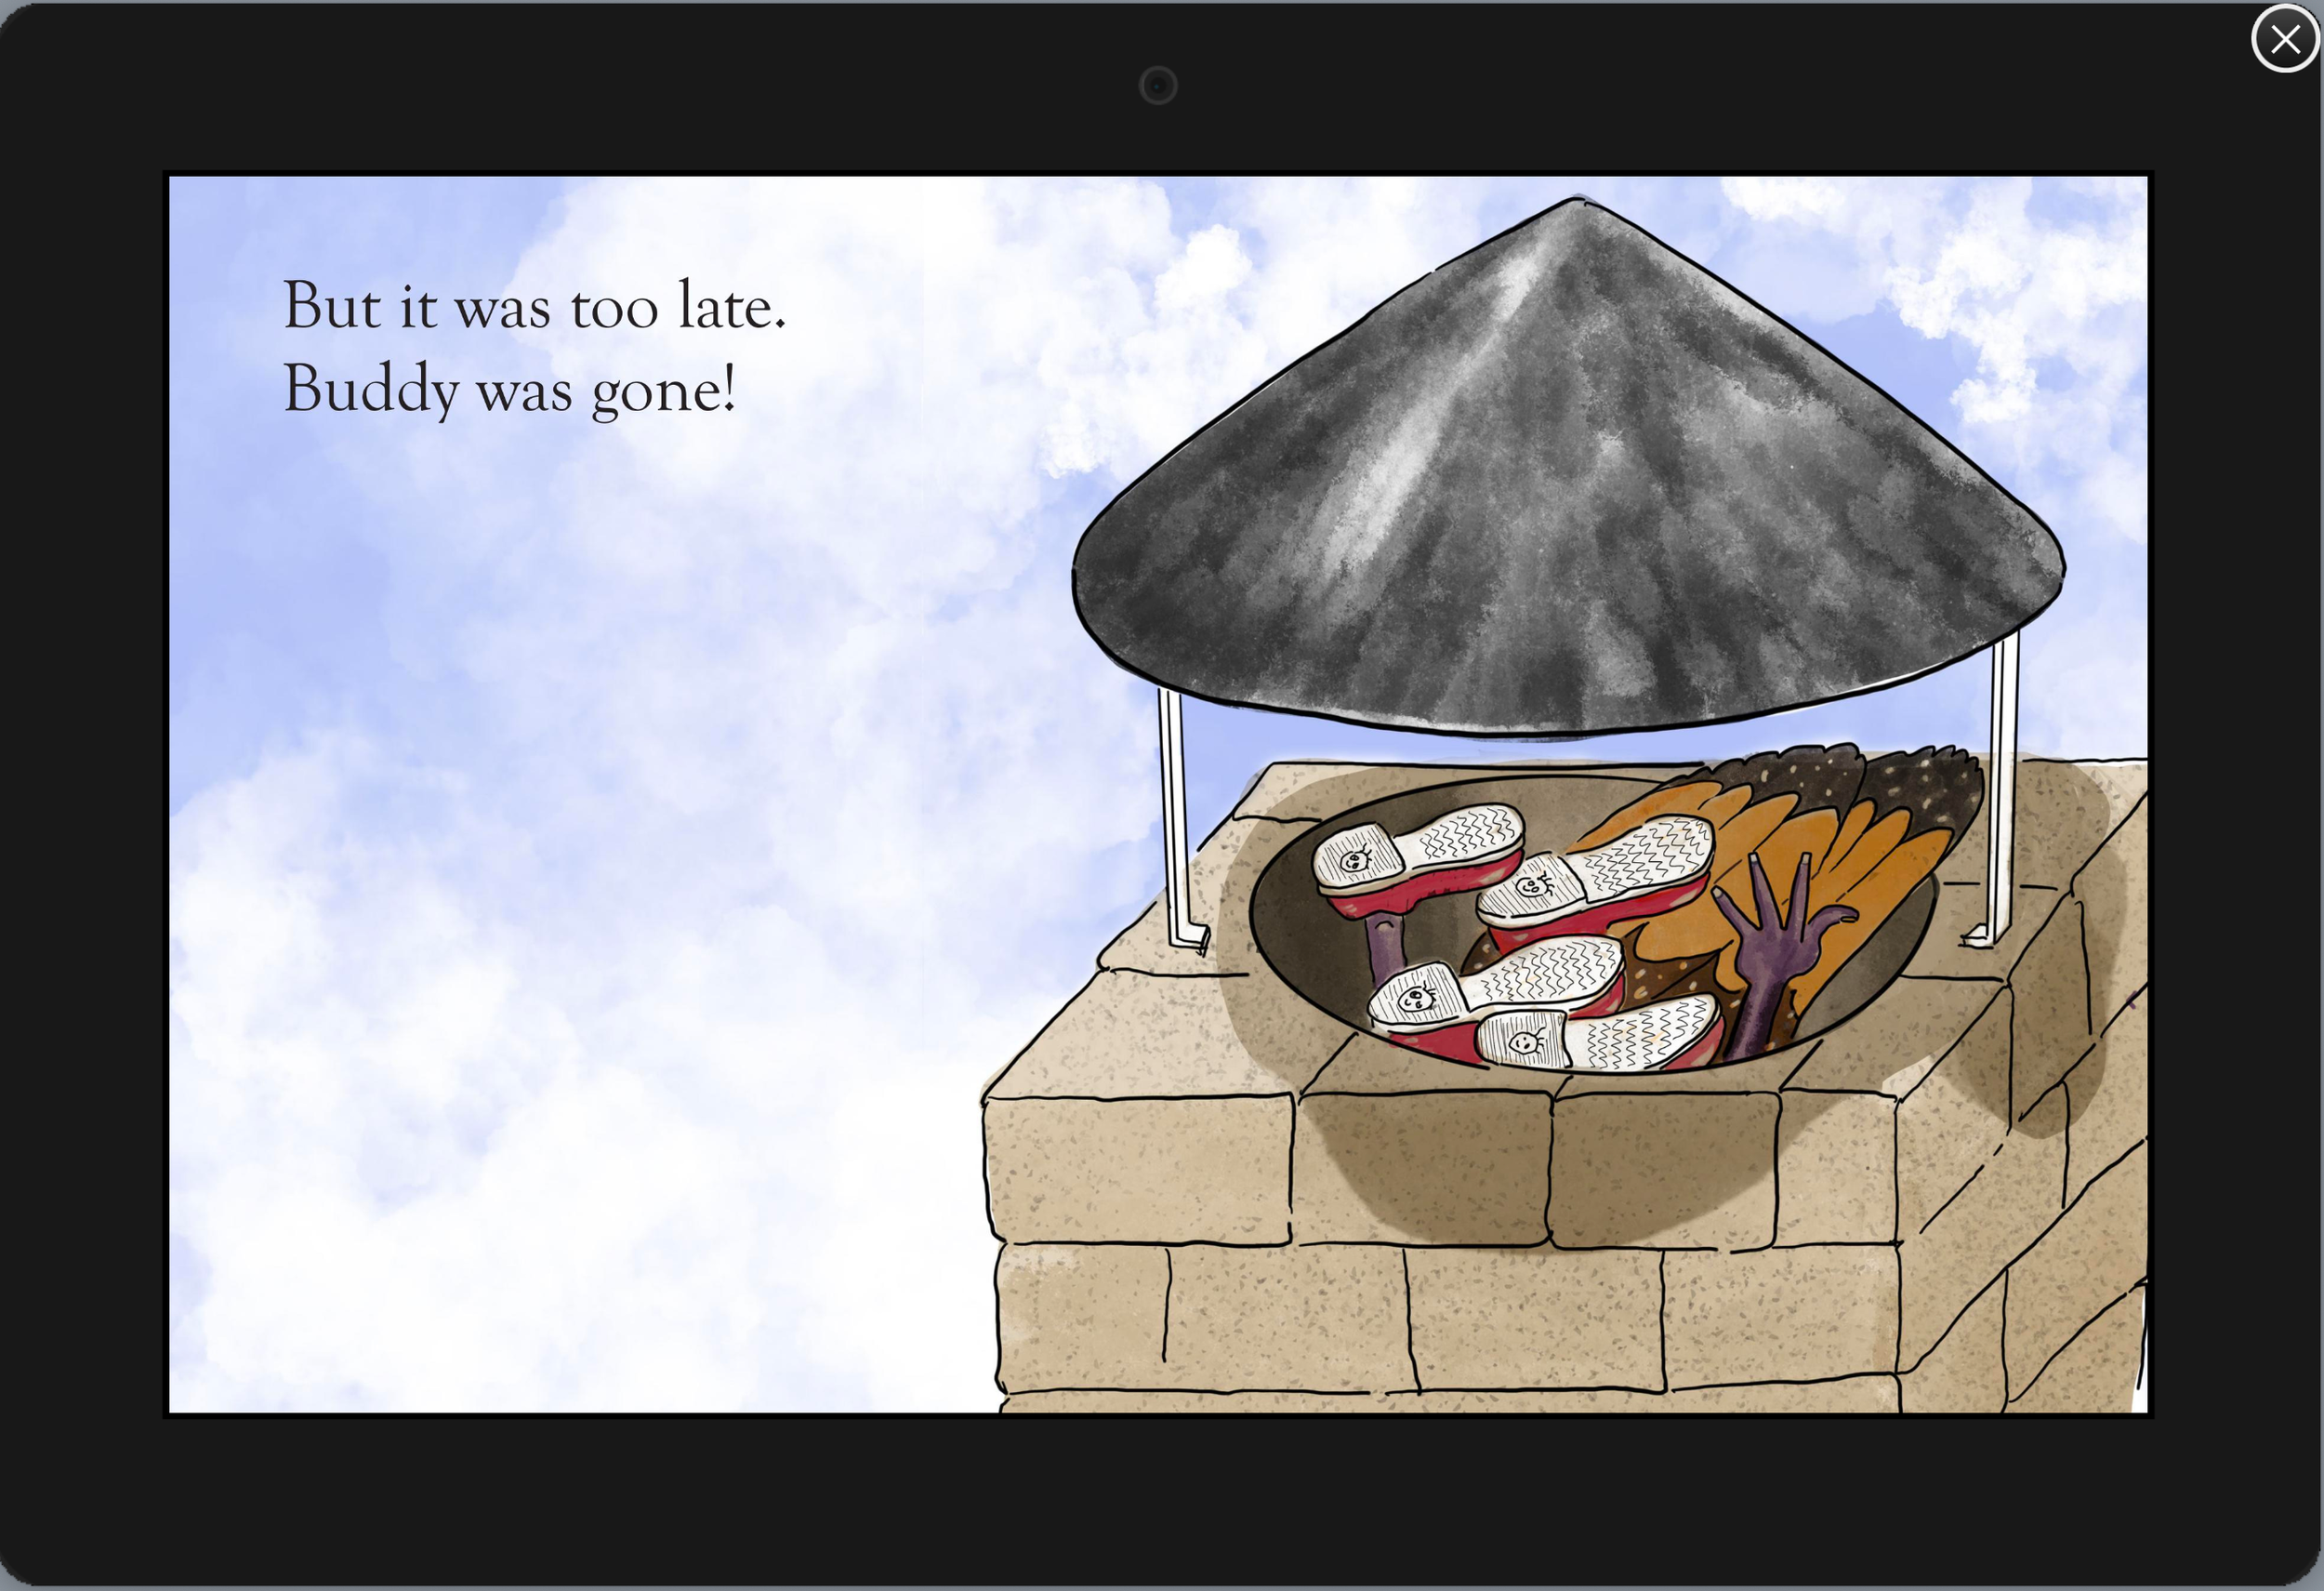 too_late_to_save_buddy.png butterfly falls down chimney, children's book, deadlines, delays